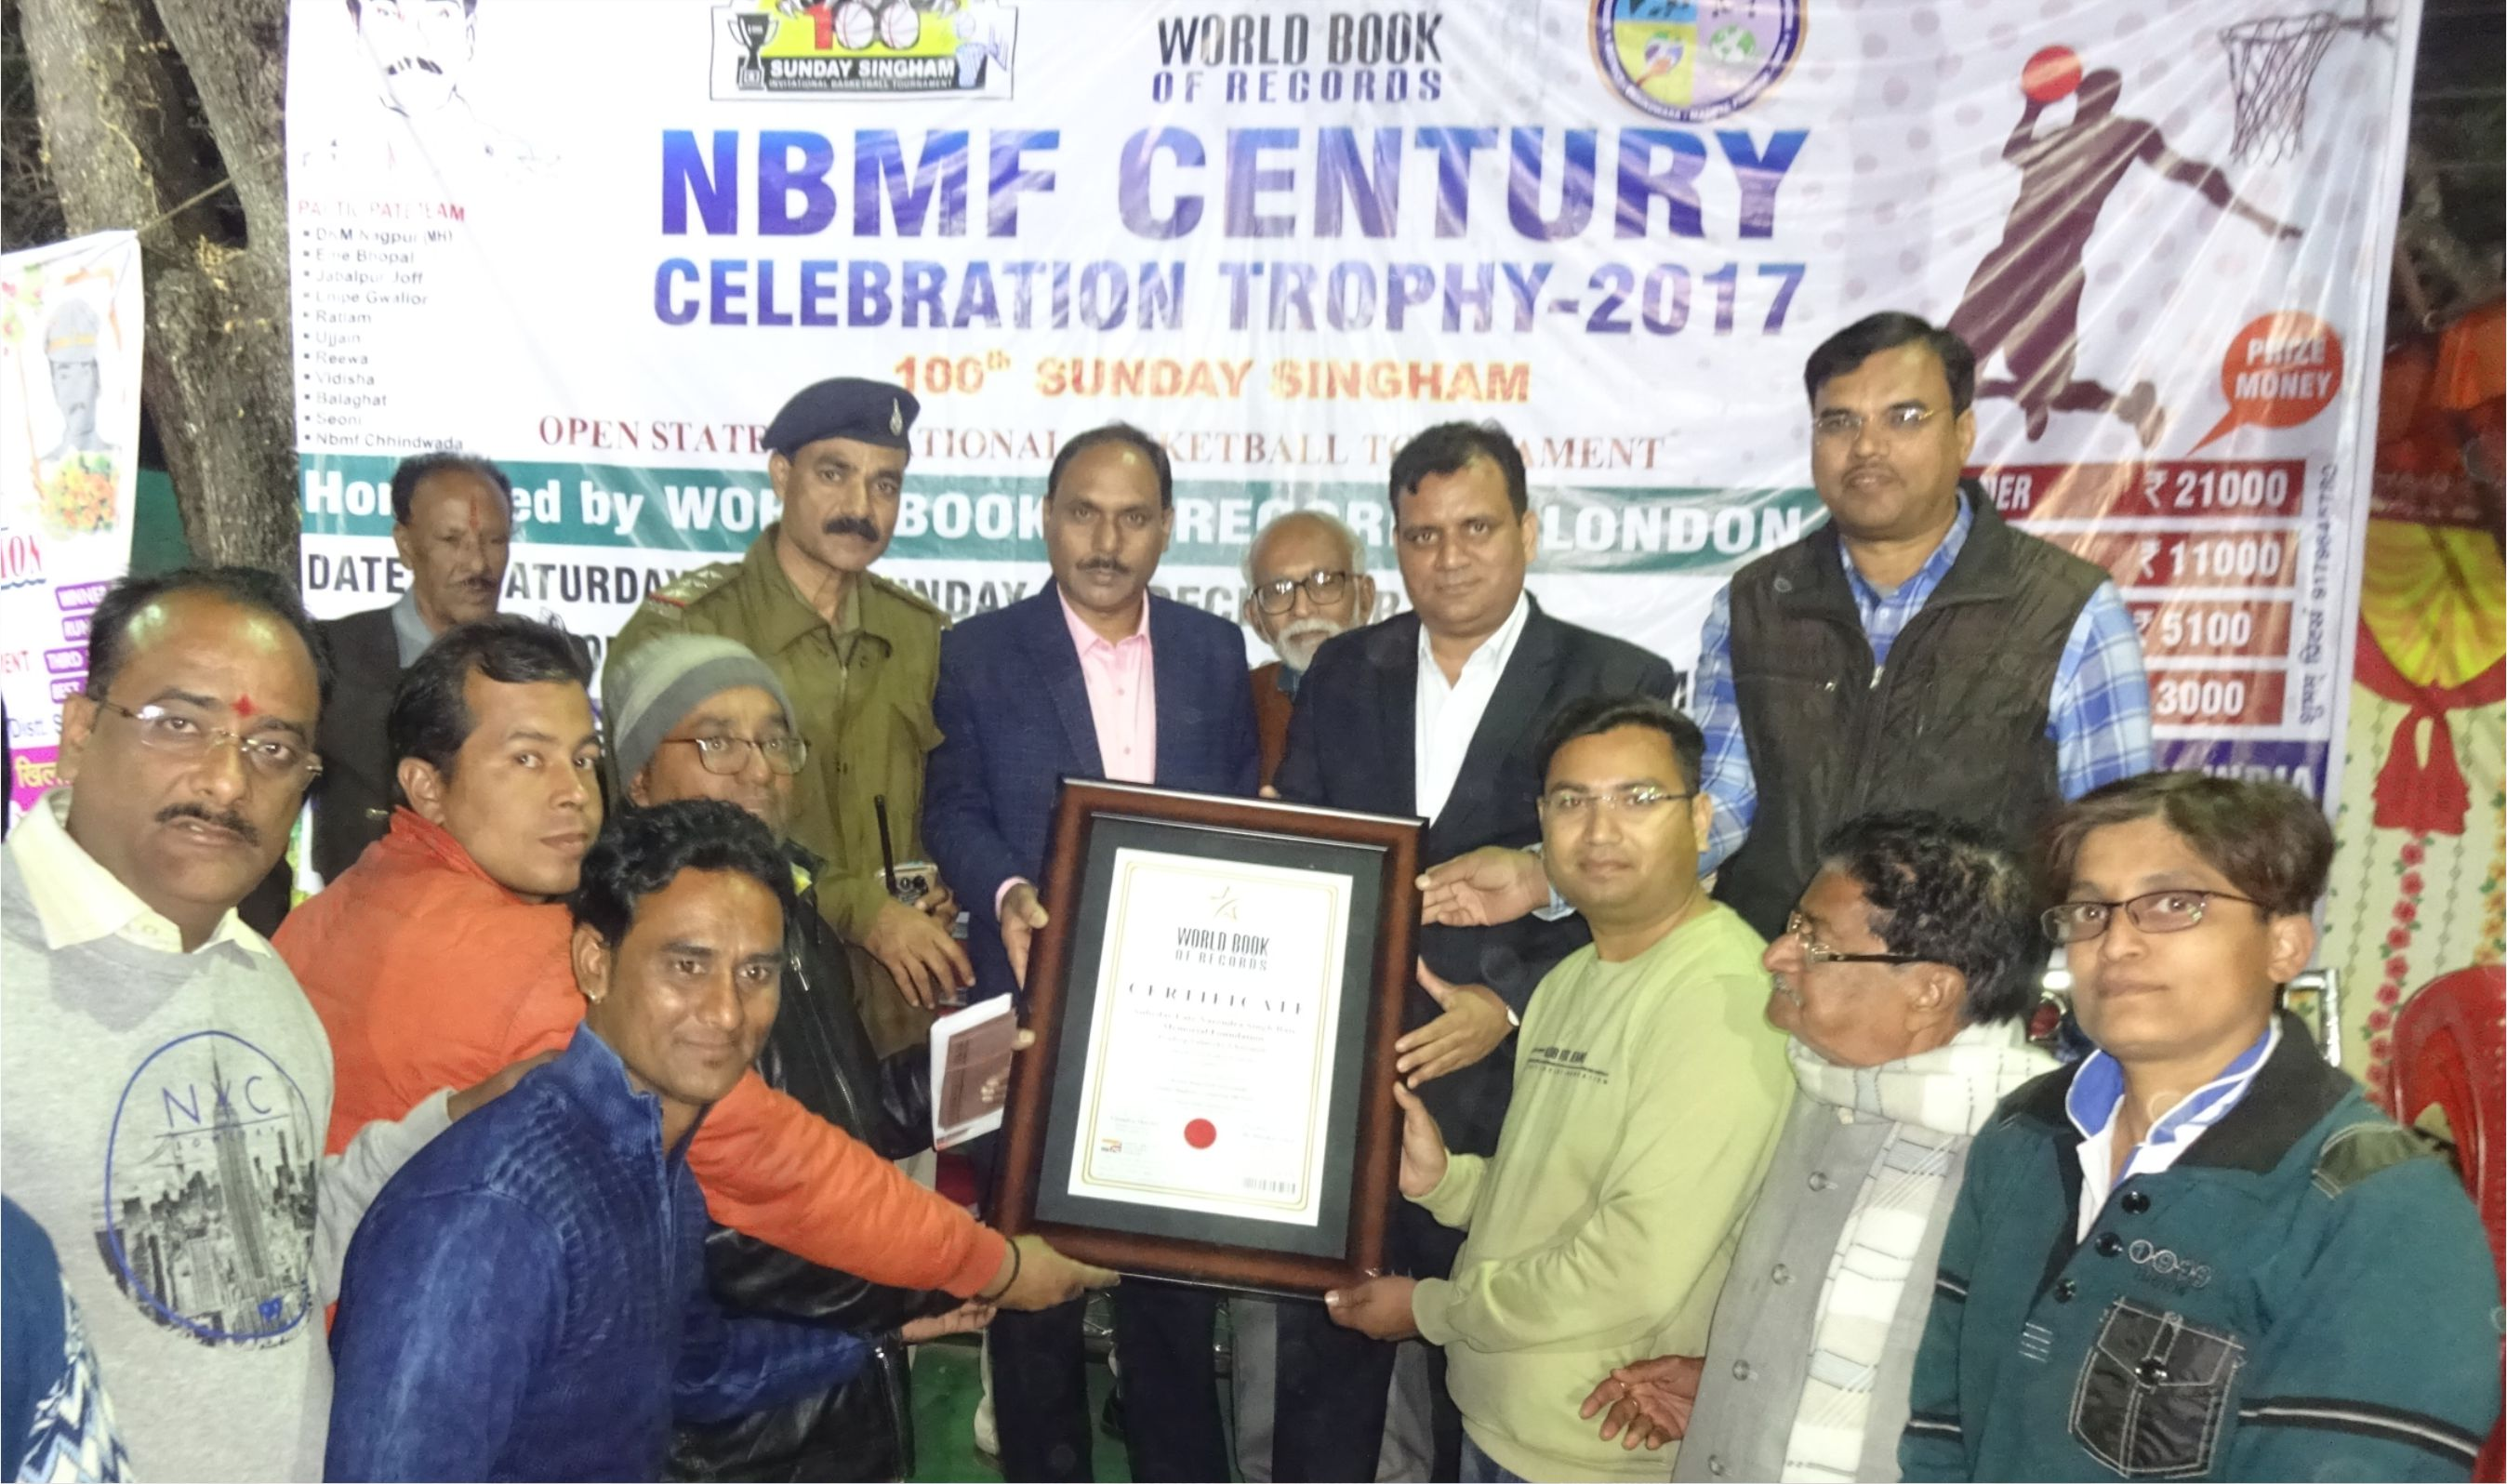 ​Narendra Singh Bais Memorial Foundation (NBMF) gets listed in World Record ​